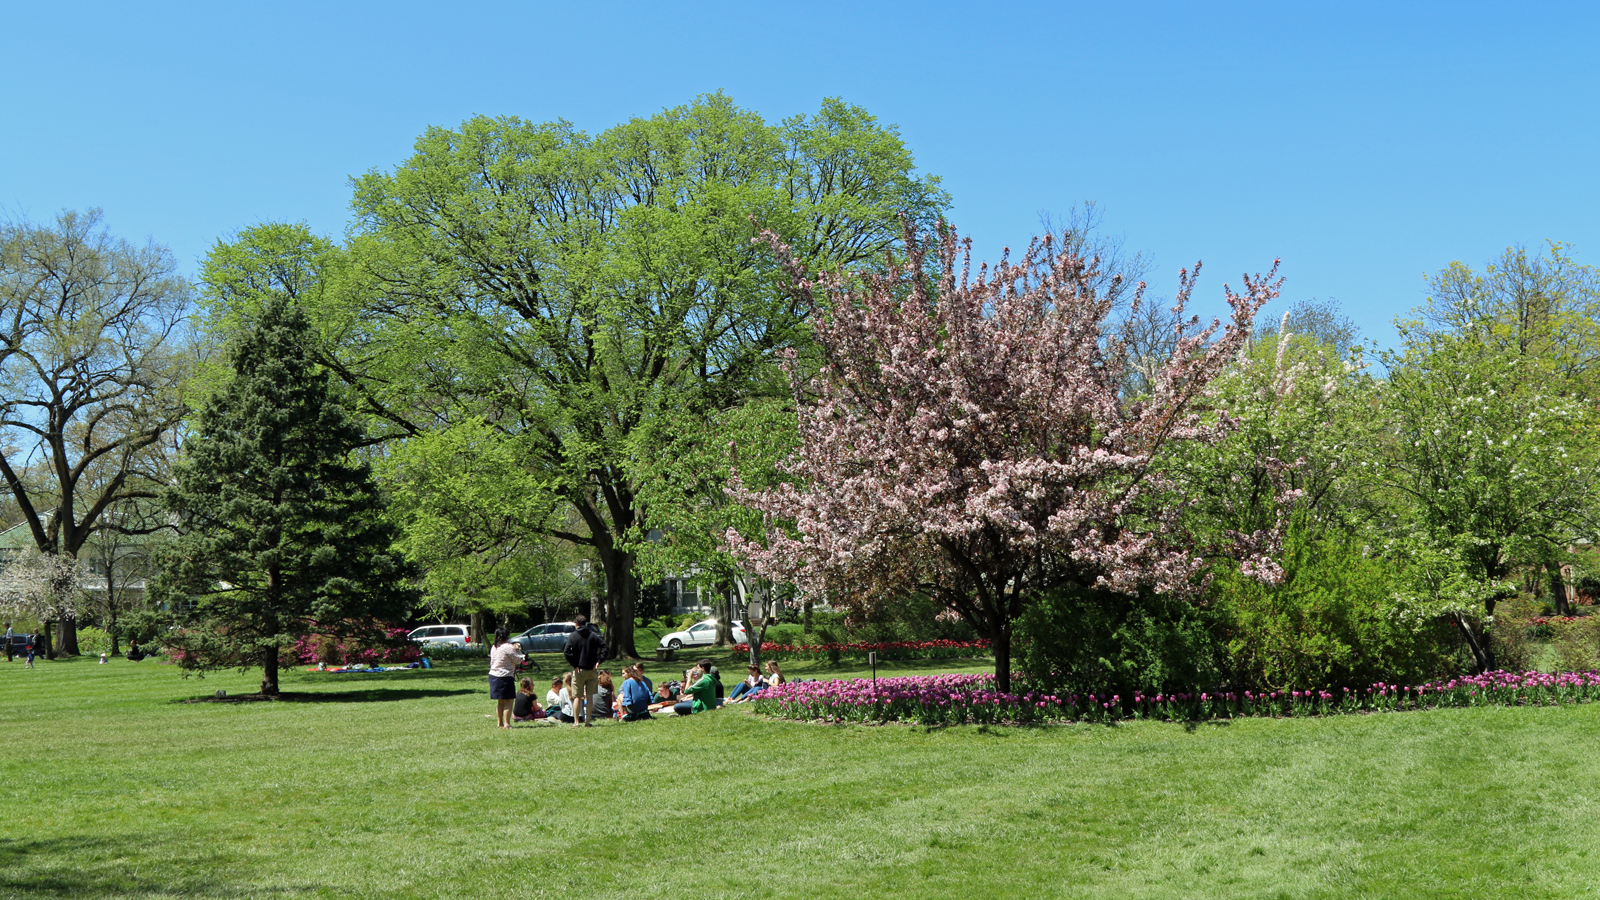 Far off view of a green lawn and people lounging at Sherwood Gardens in Baltimore